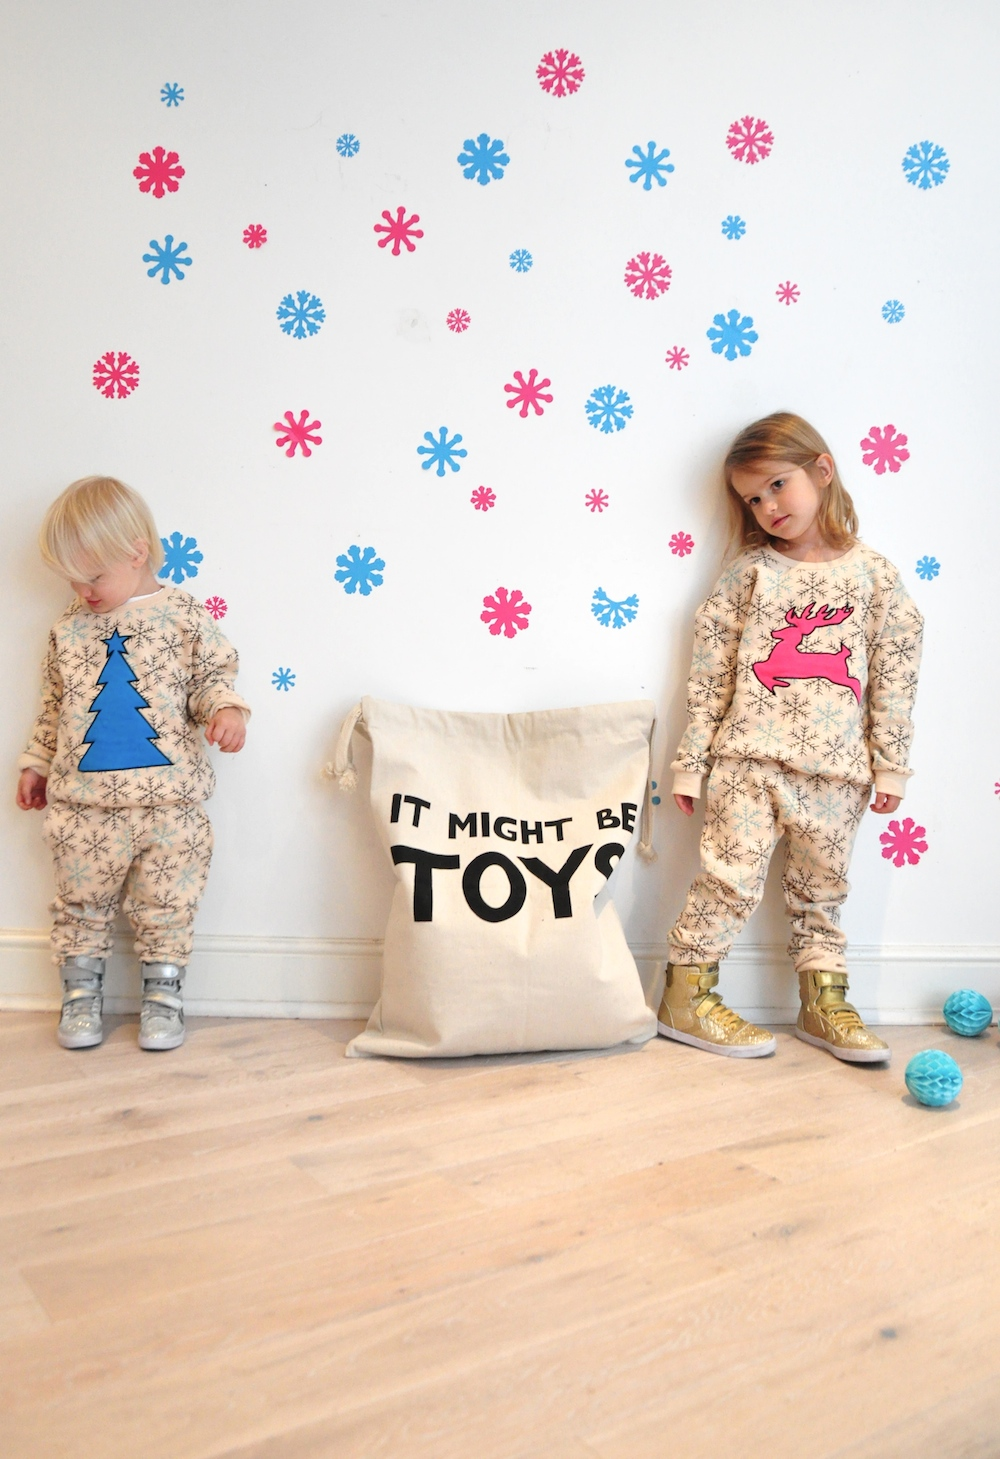 Gardner_and_the_gang_harrods_miniharrods_Christmas_tellkiddo_kidsen_16